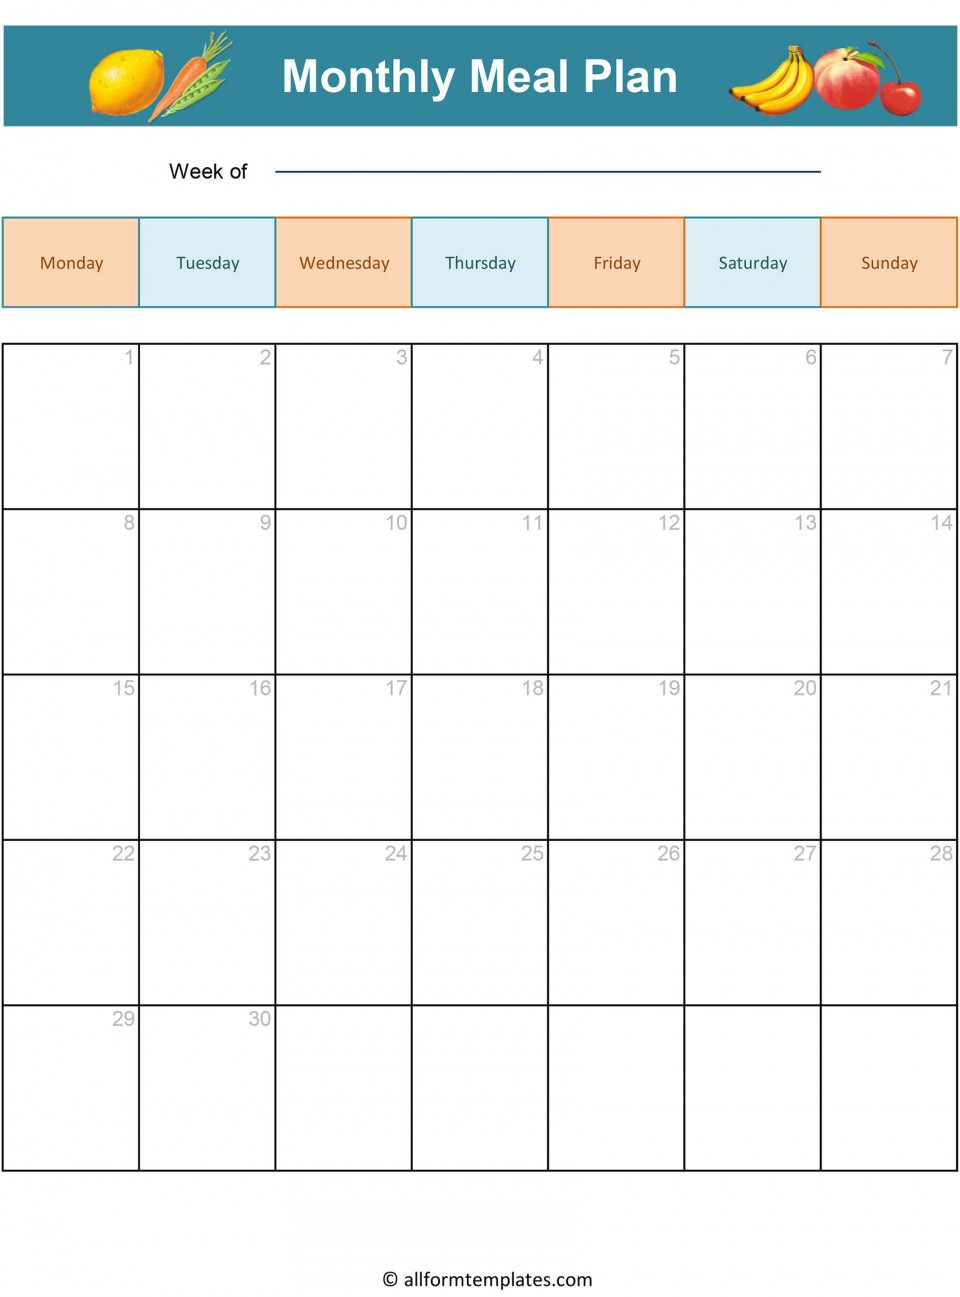 008 Magnificent Excel Weekly Meal Planner Template Highest Clarity  With Grocery List Downloadable960